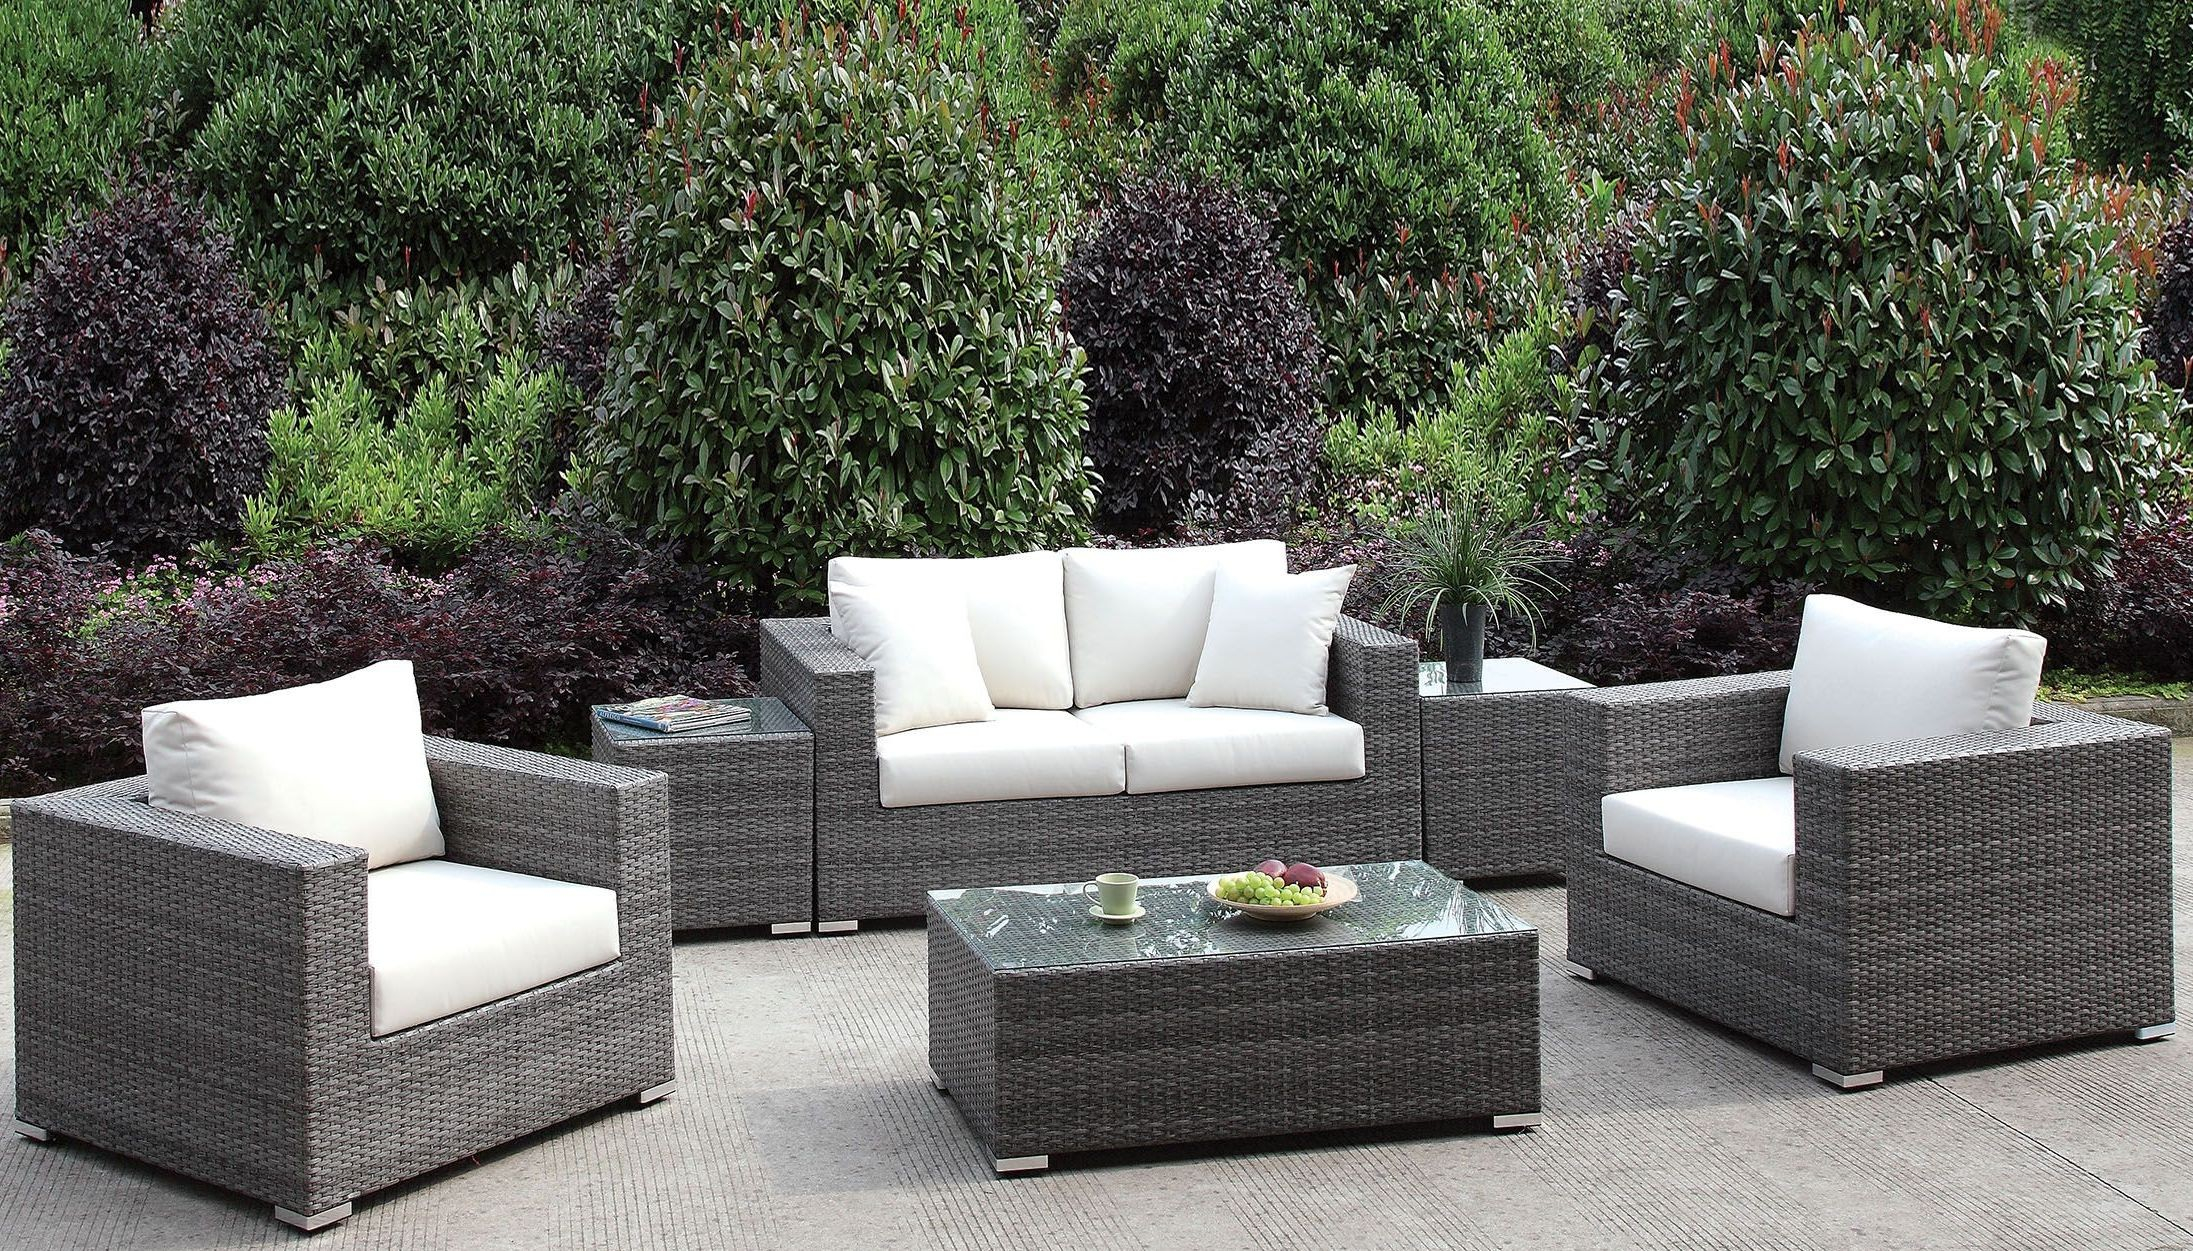 Somani Gray And Ivory Outdoor Living Room Set From Furniture Of in Outdoor Living Room Sets